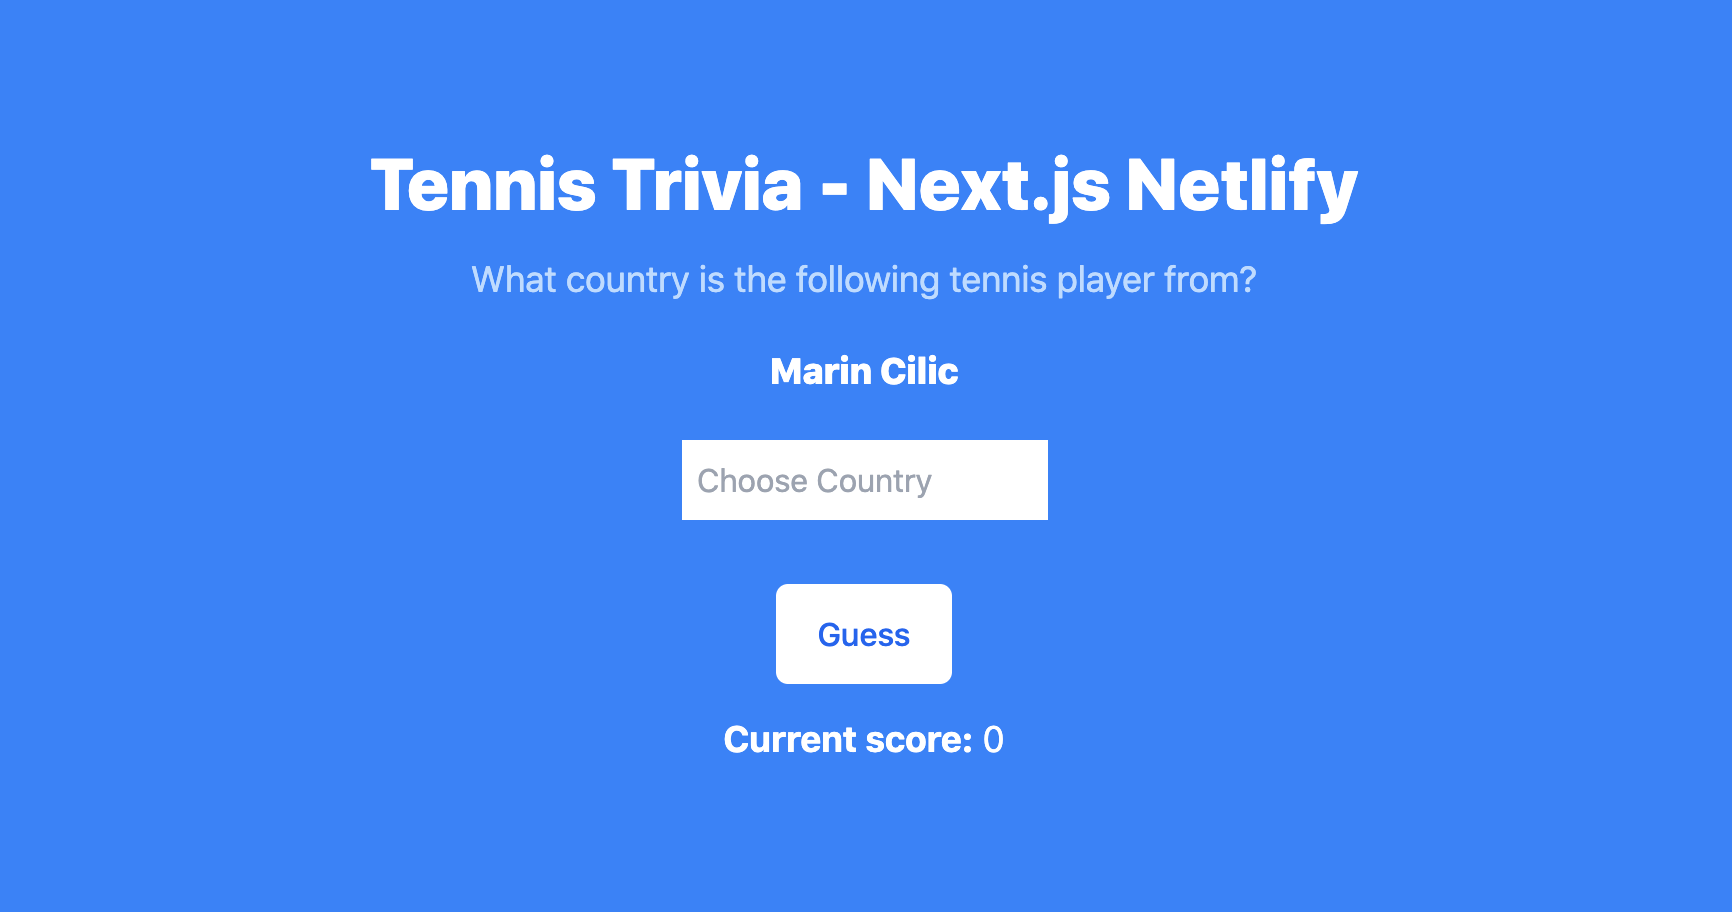 Building a Tennis Trivia App With Next.js and Netlify